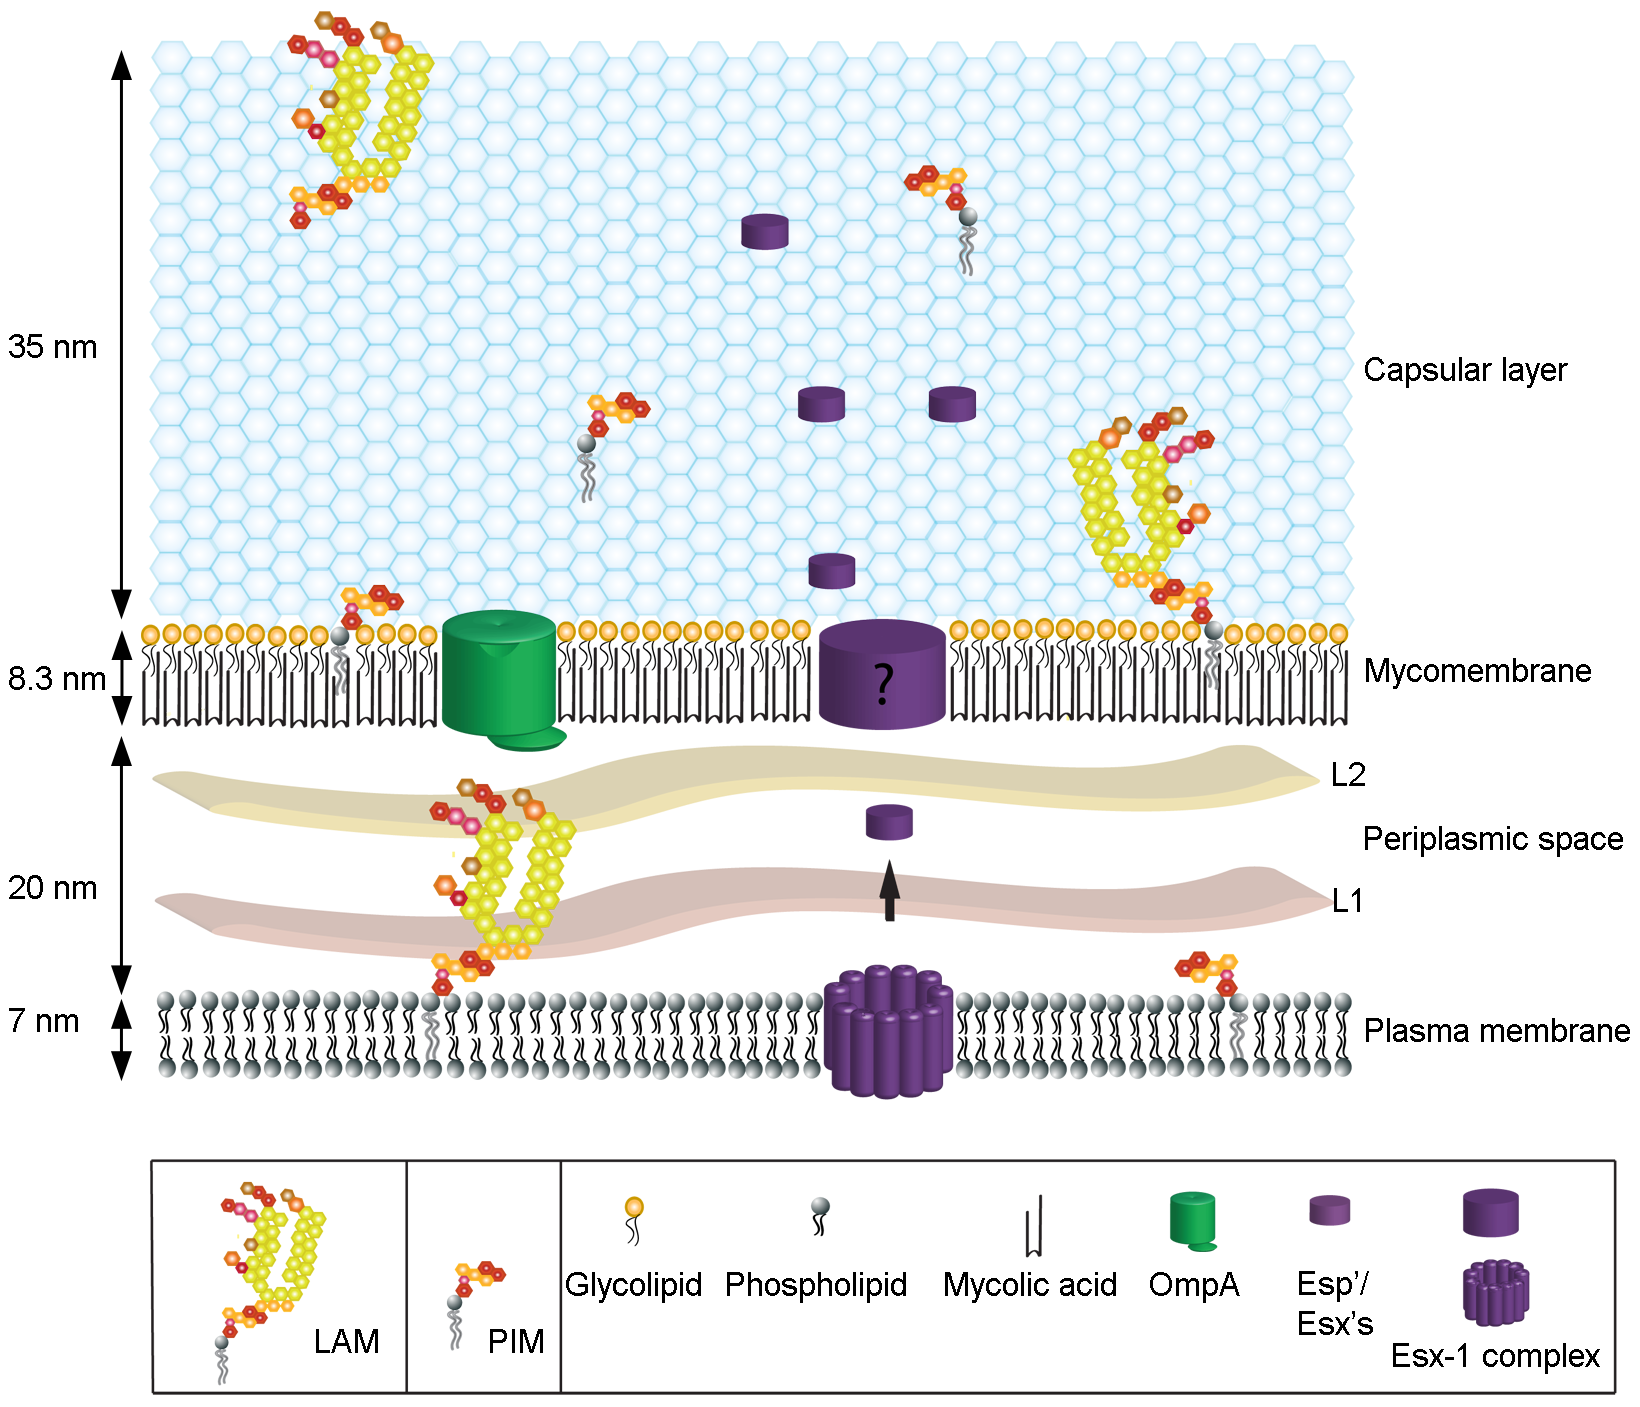 The spatial organization of the mycobacterial cell envelope exhibiting the capsule.